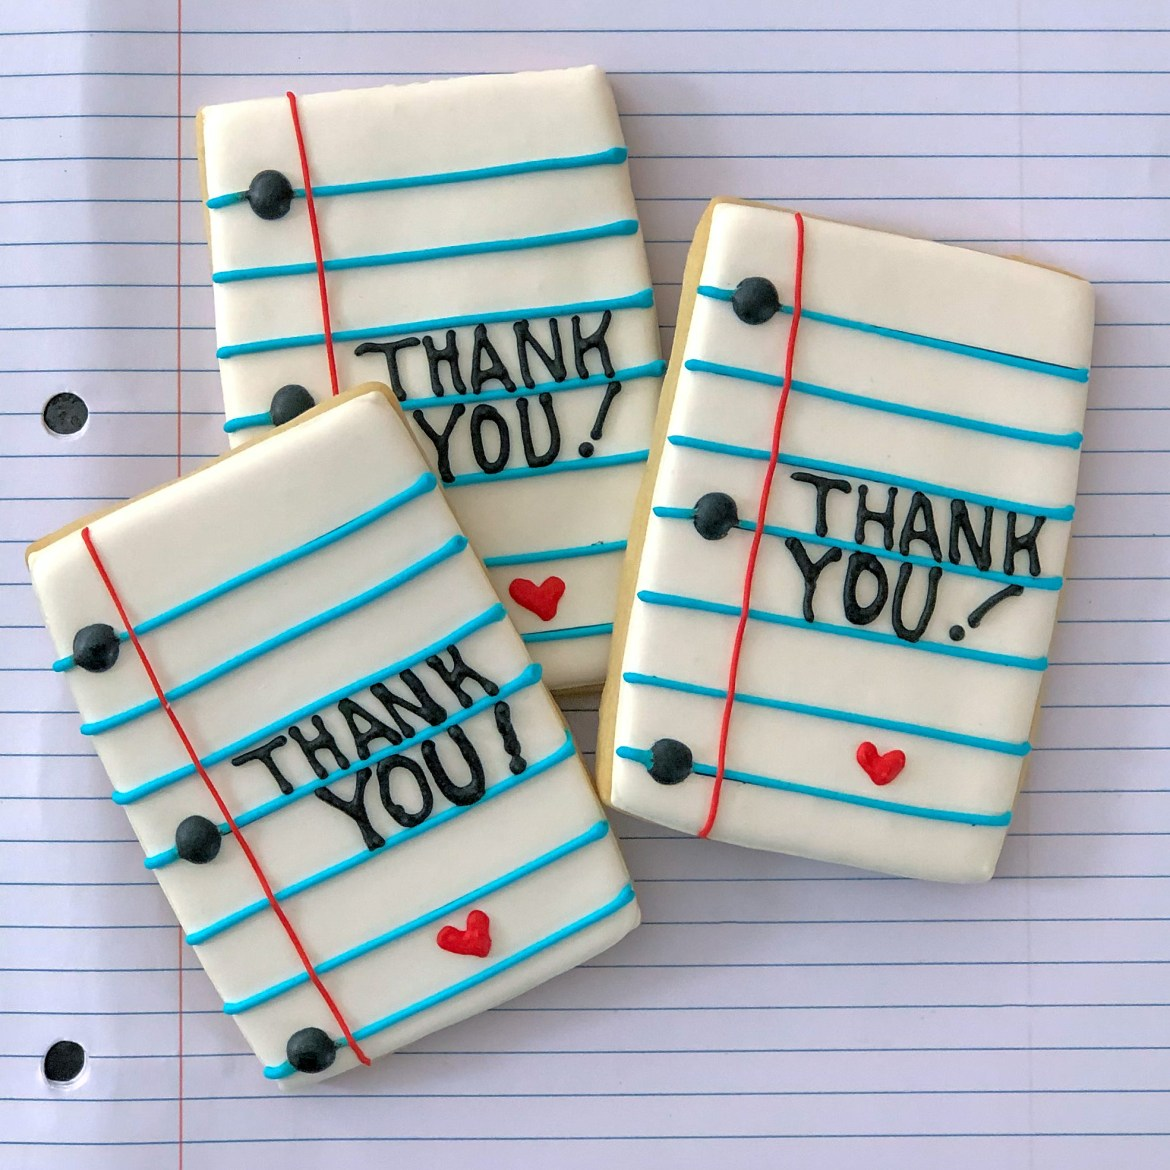 #manythanks #cookieshilarystyle #cookiesareeverything #notebookpapercookies